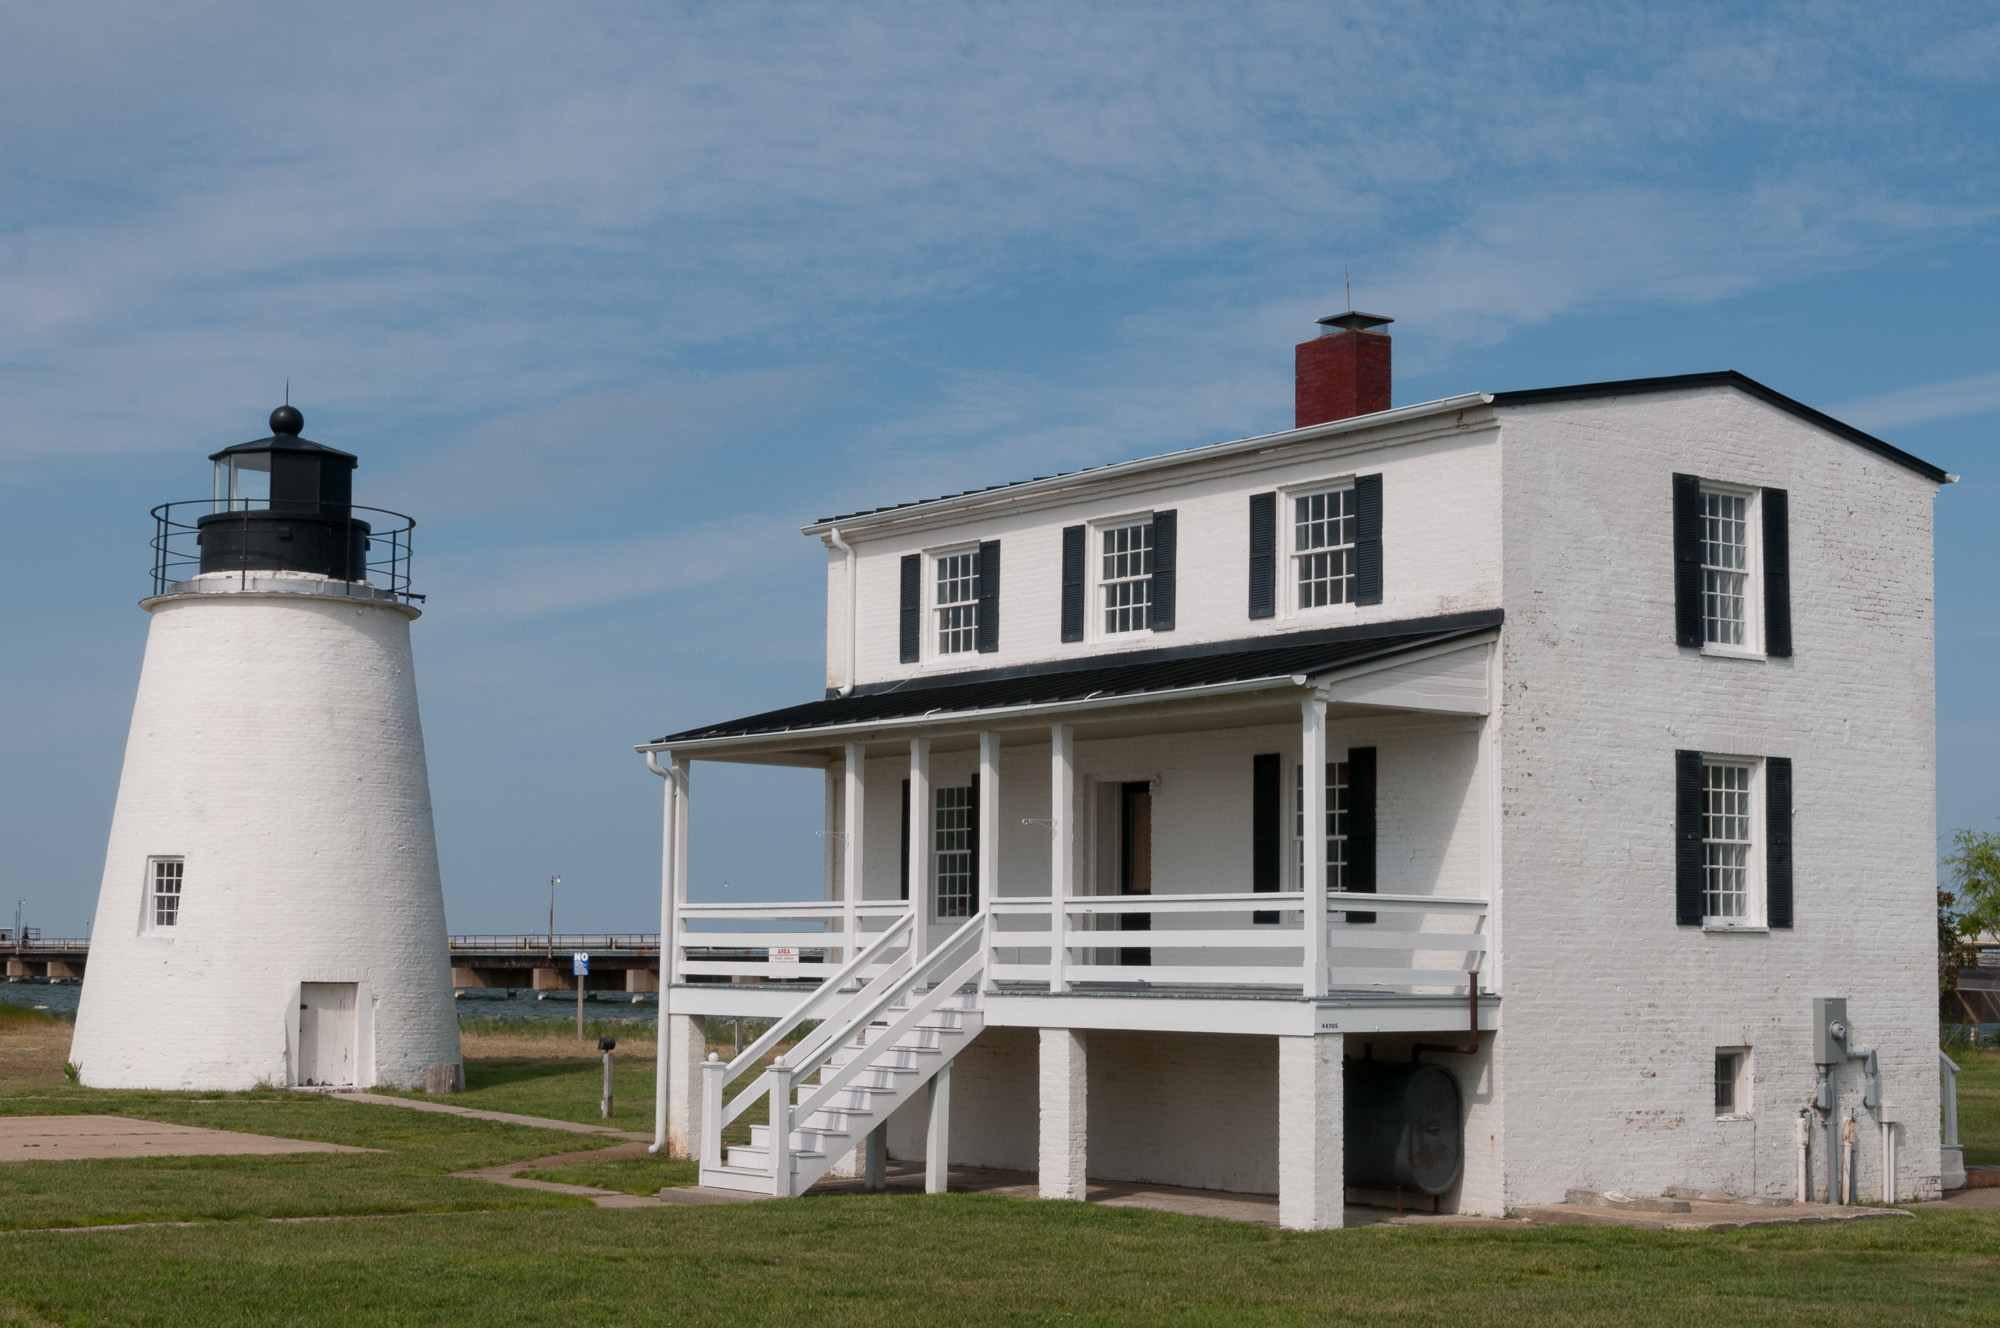 20090718_095304_0001_PineyPointLighthouse_color_THP.jpg